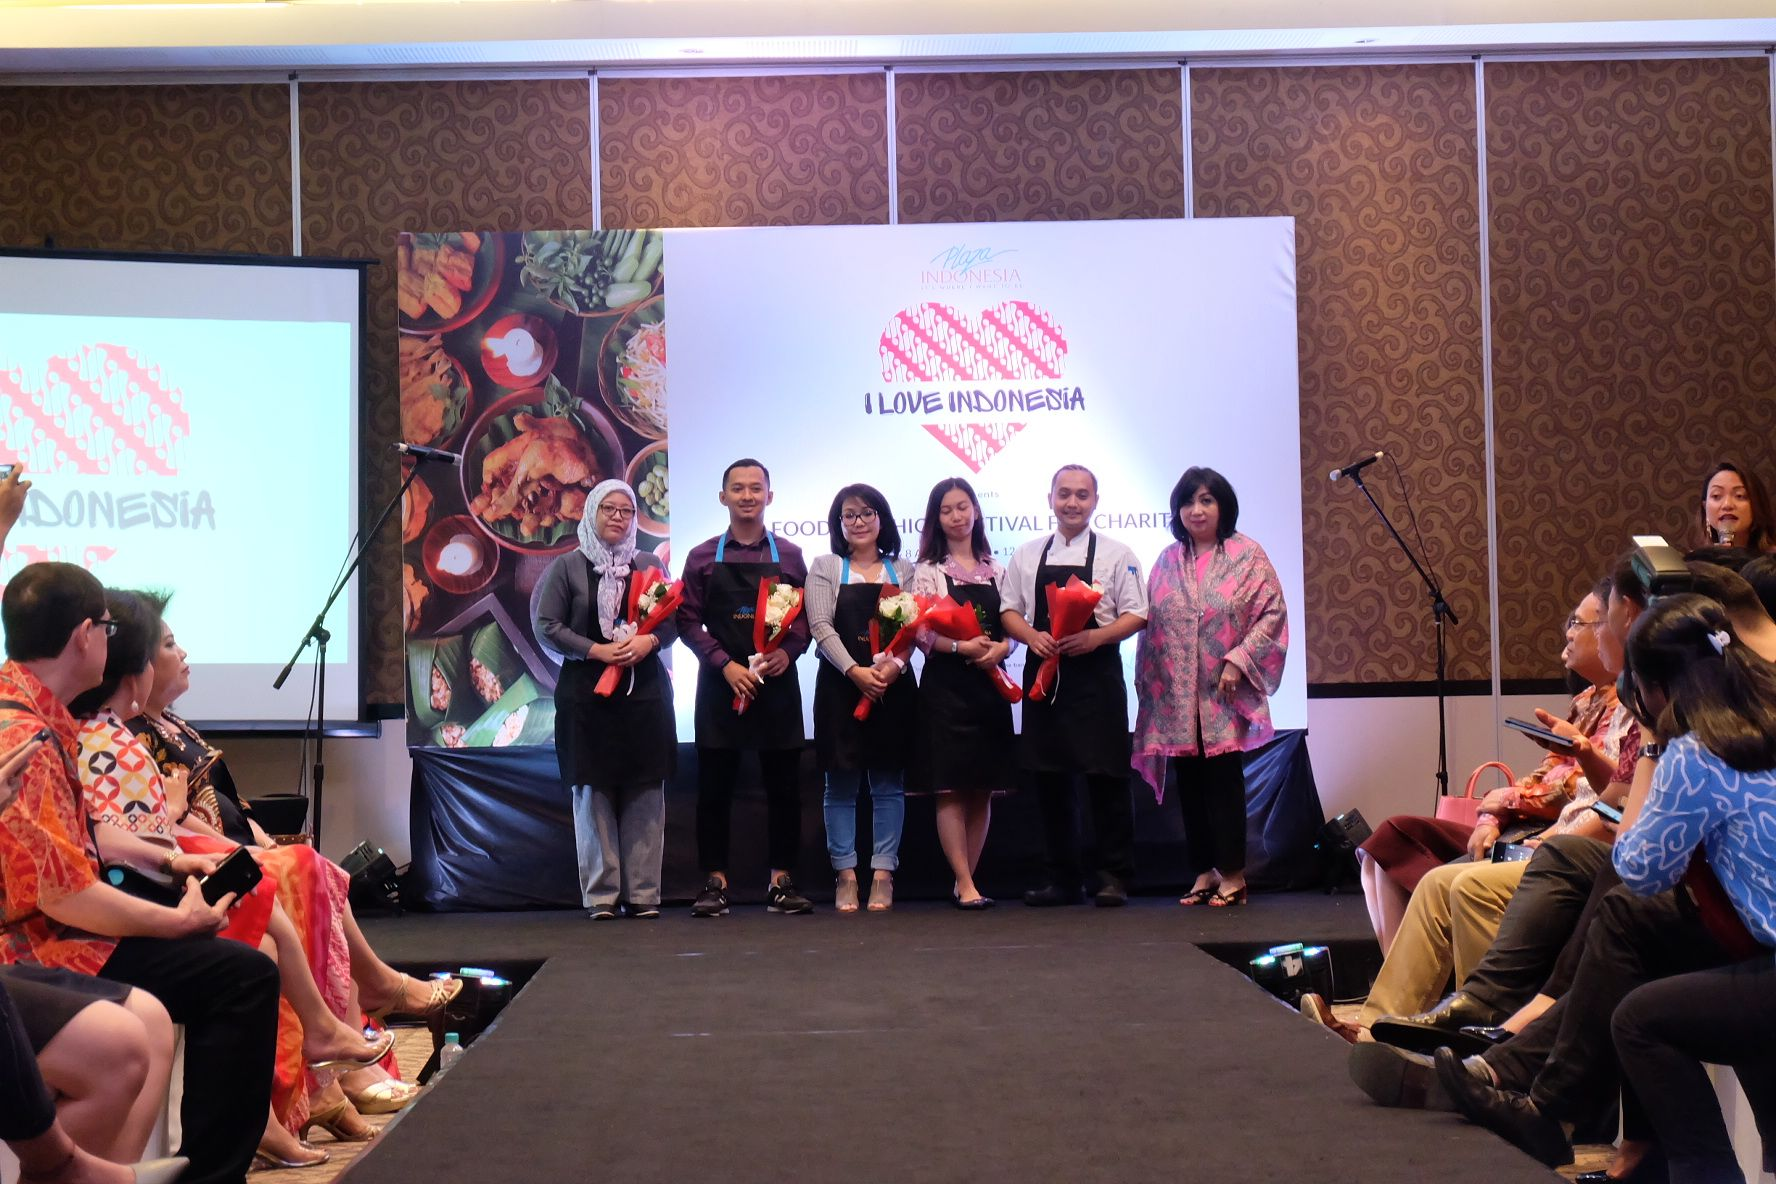 Kulineran Sambil Beramal di Acara 'Food and Fashion Charity'